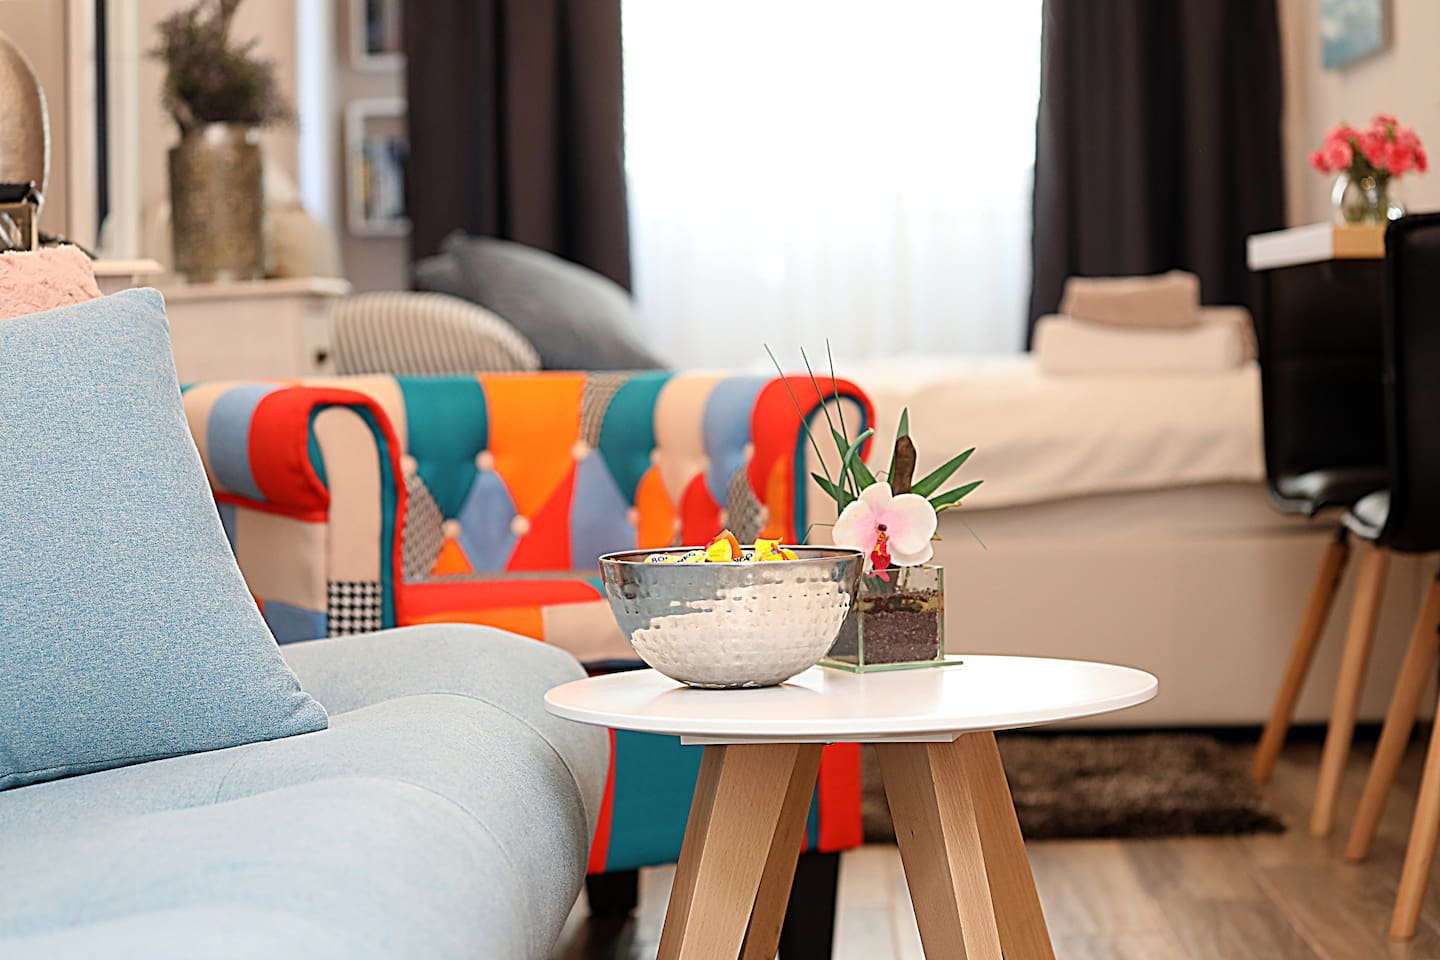 Beautiful stylish apartment with a comfy bed, large kitchen, and modern patchwork design